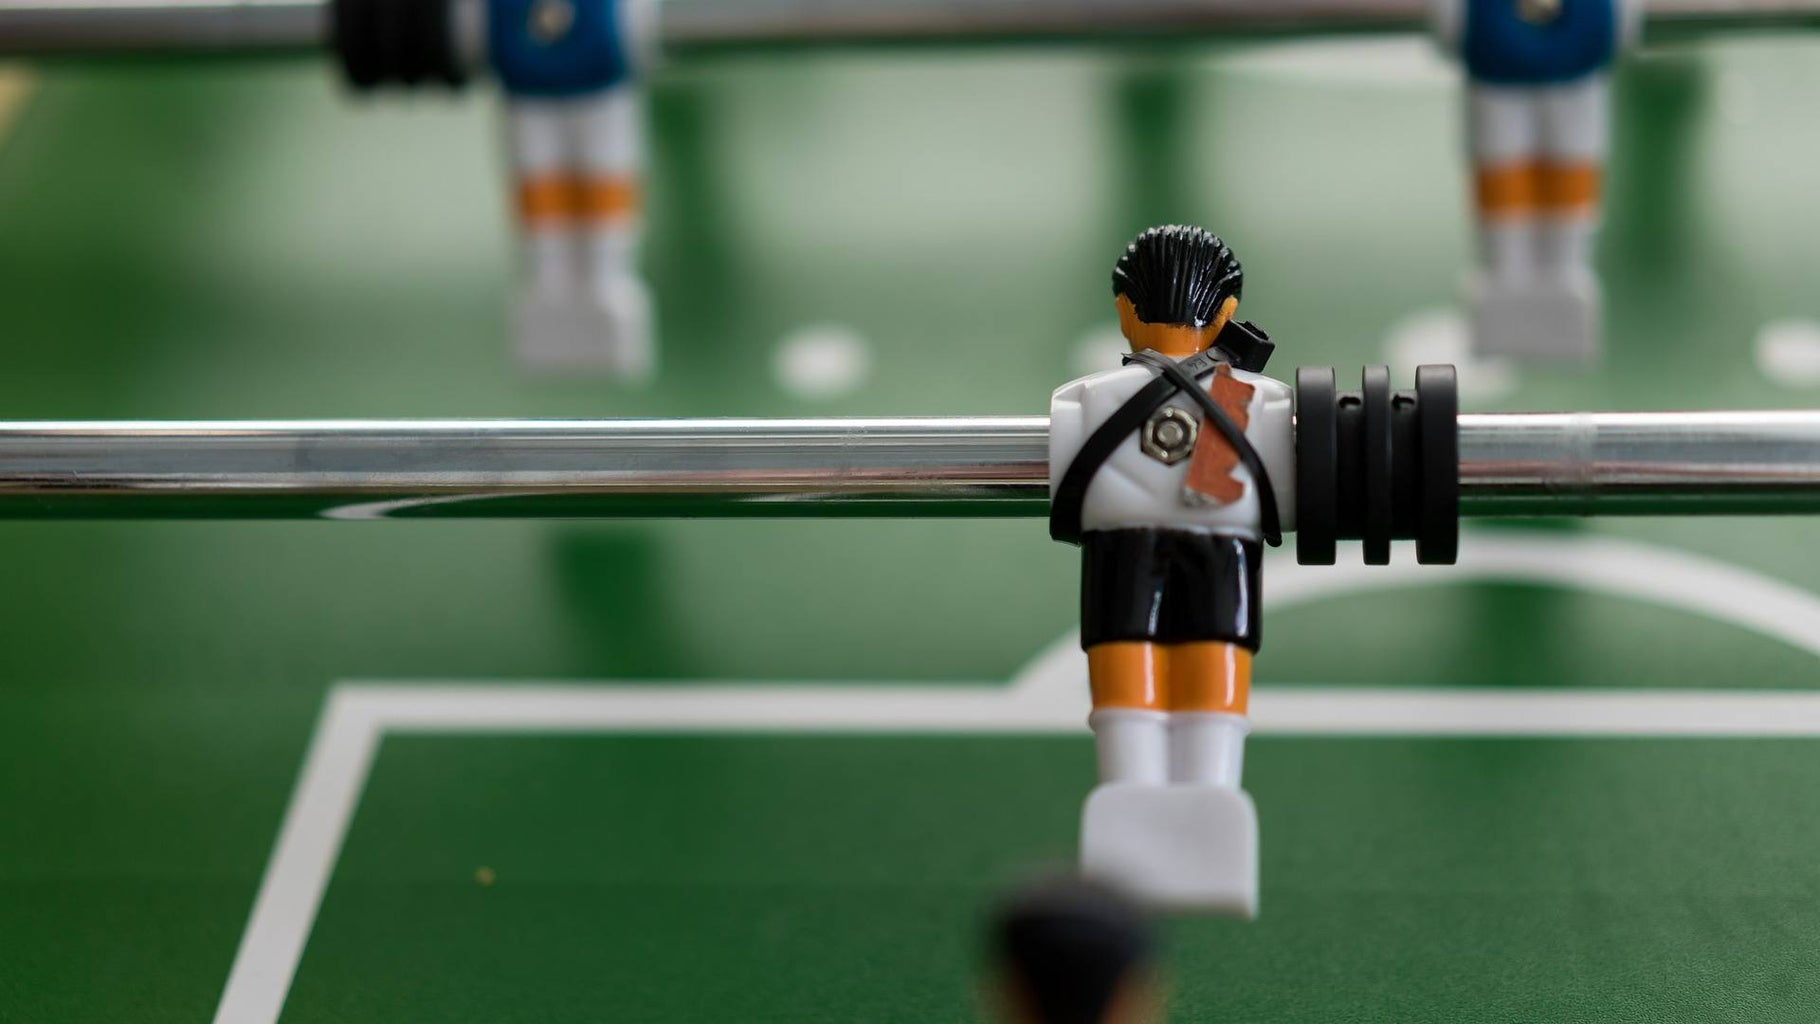 Place the Rod Back to the Table and Enjoy Another Couple of Years of Playing Foosball